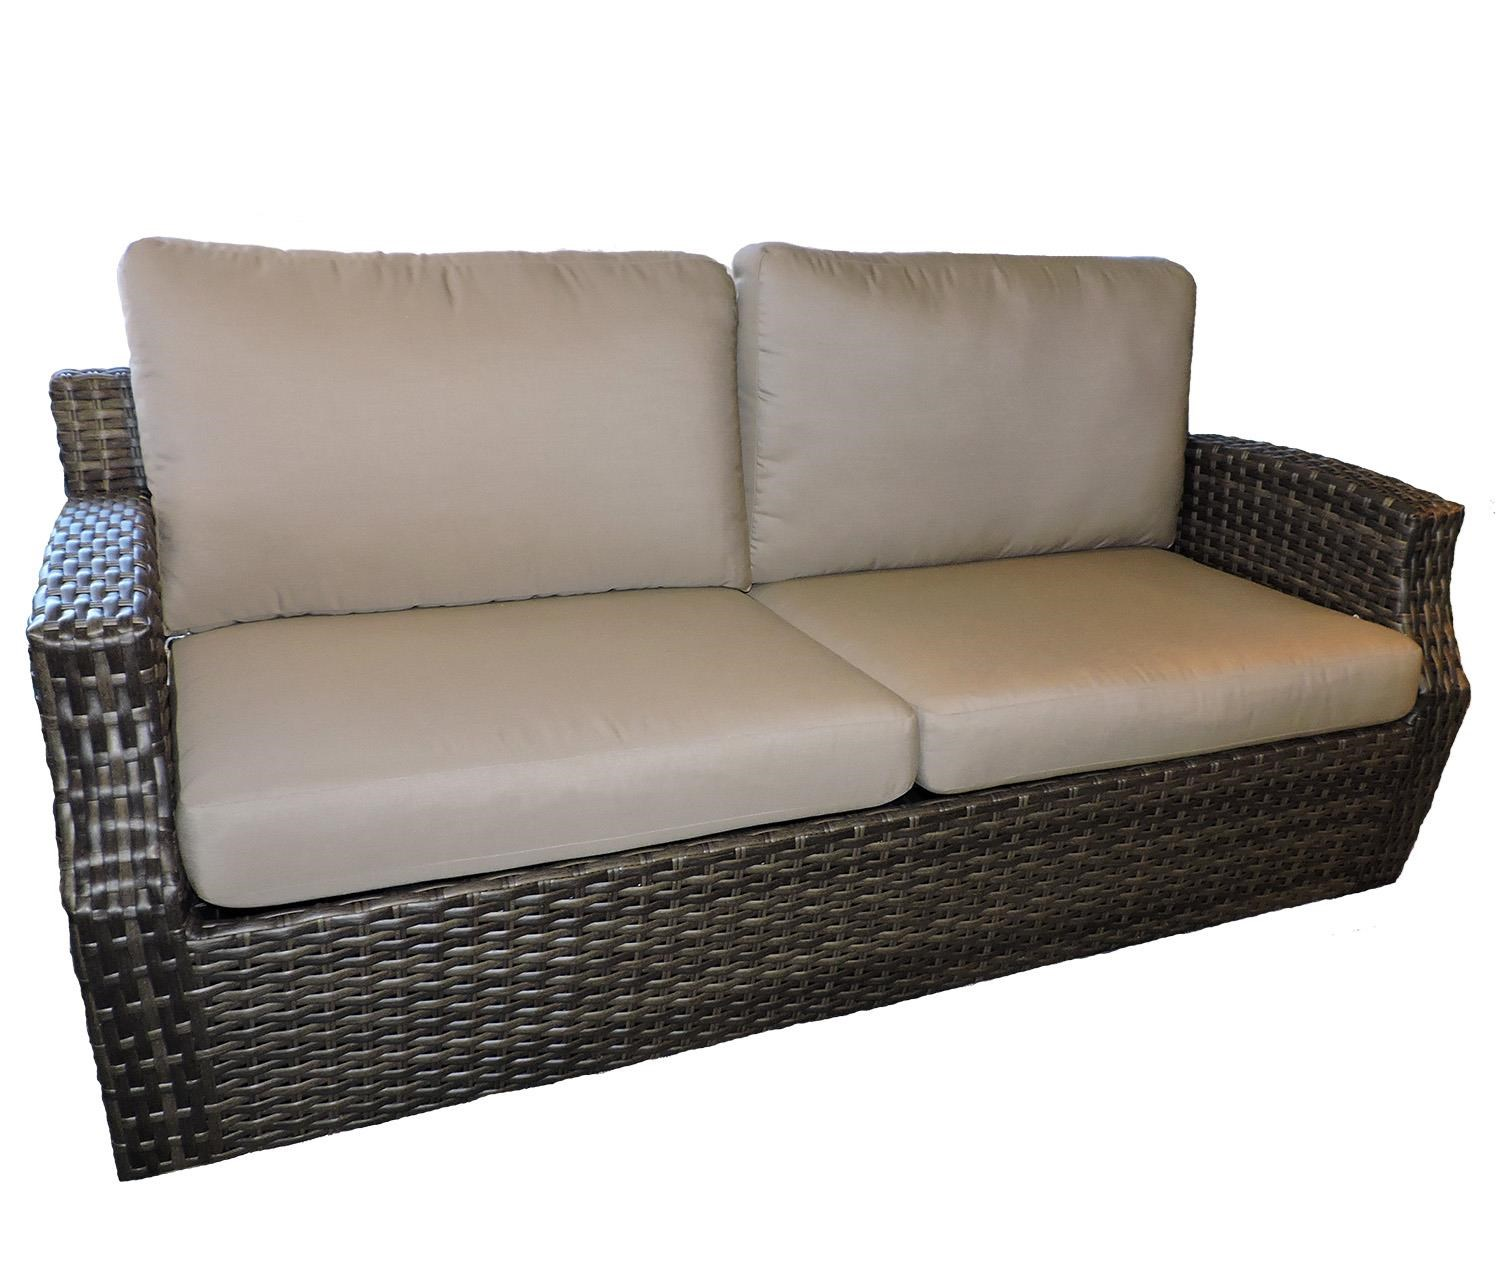 Belfort Outdoor Cascade Outdoor Sofa - Item Number: W5099D S 5461-0000